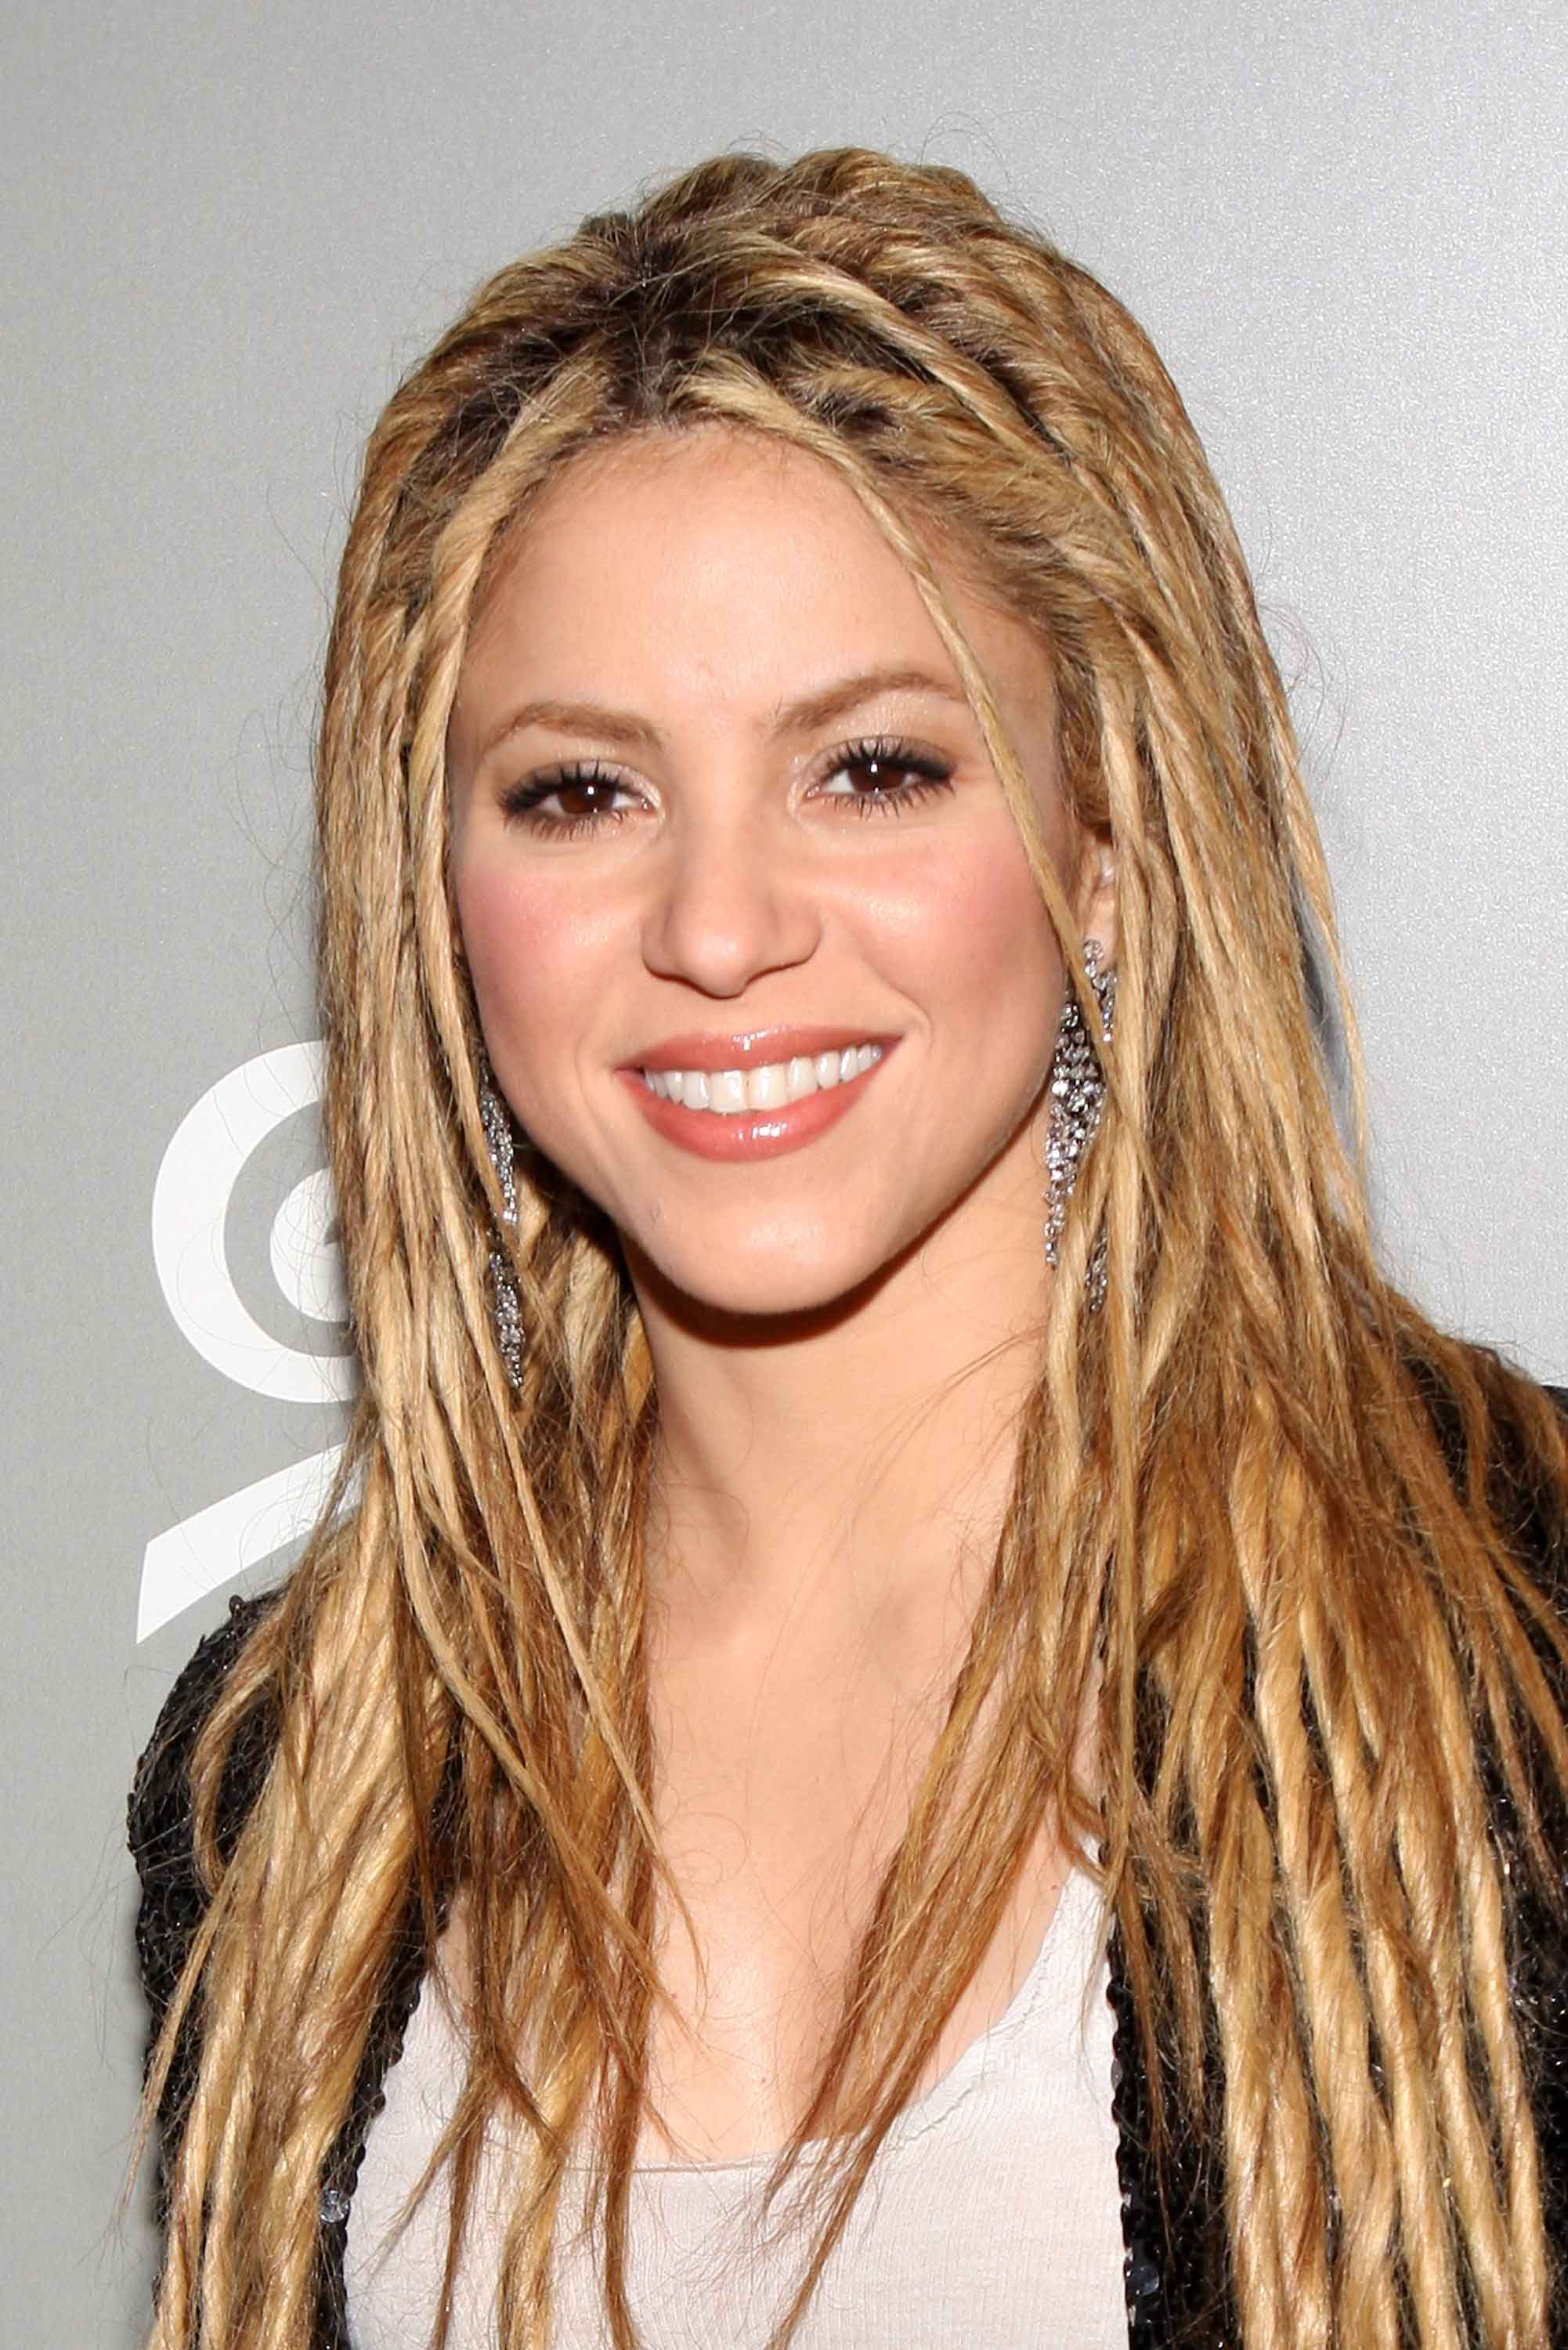 shakira dreadlock hairstyles with blonde hair